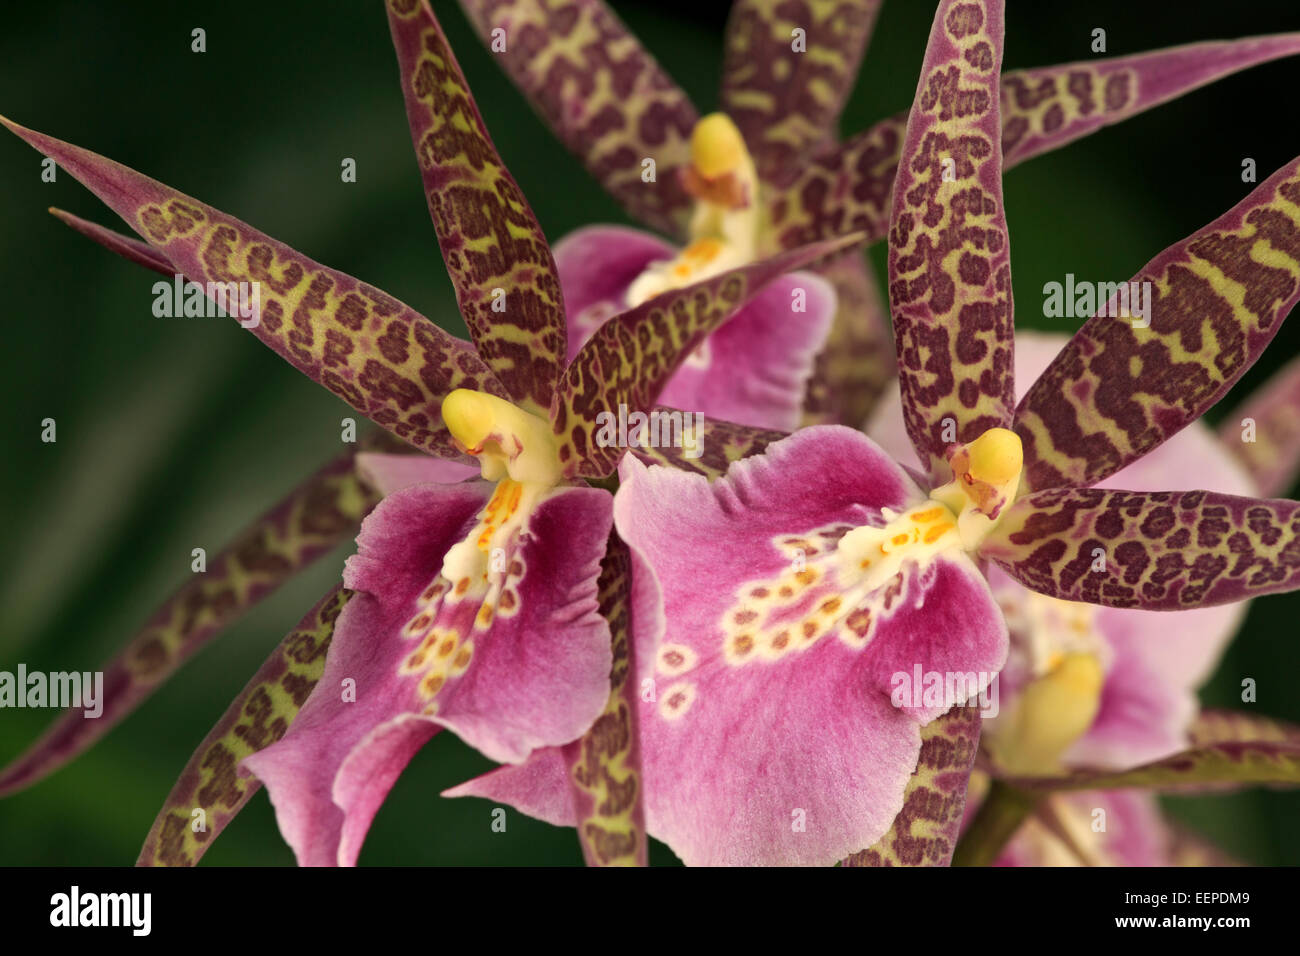 Orchid flowers, variety Miltassia CM Fitch 'Izumi' - Stock Image